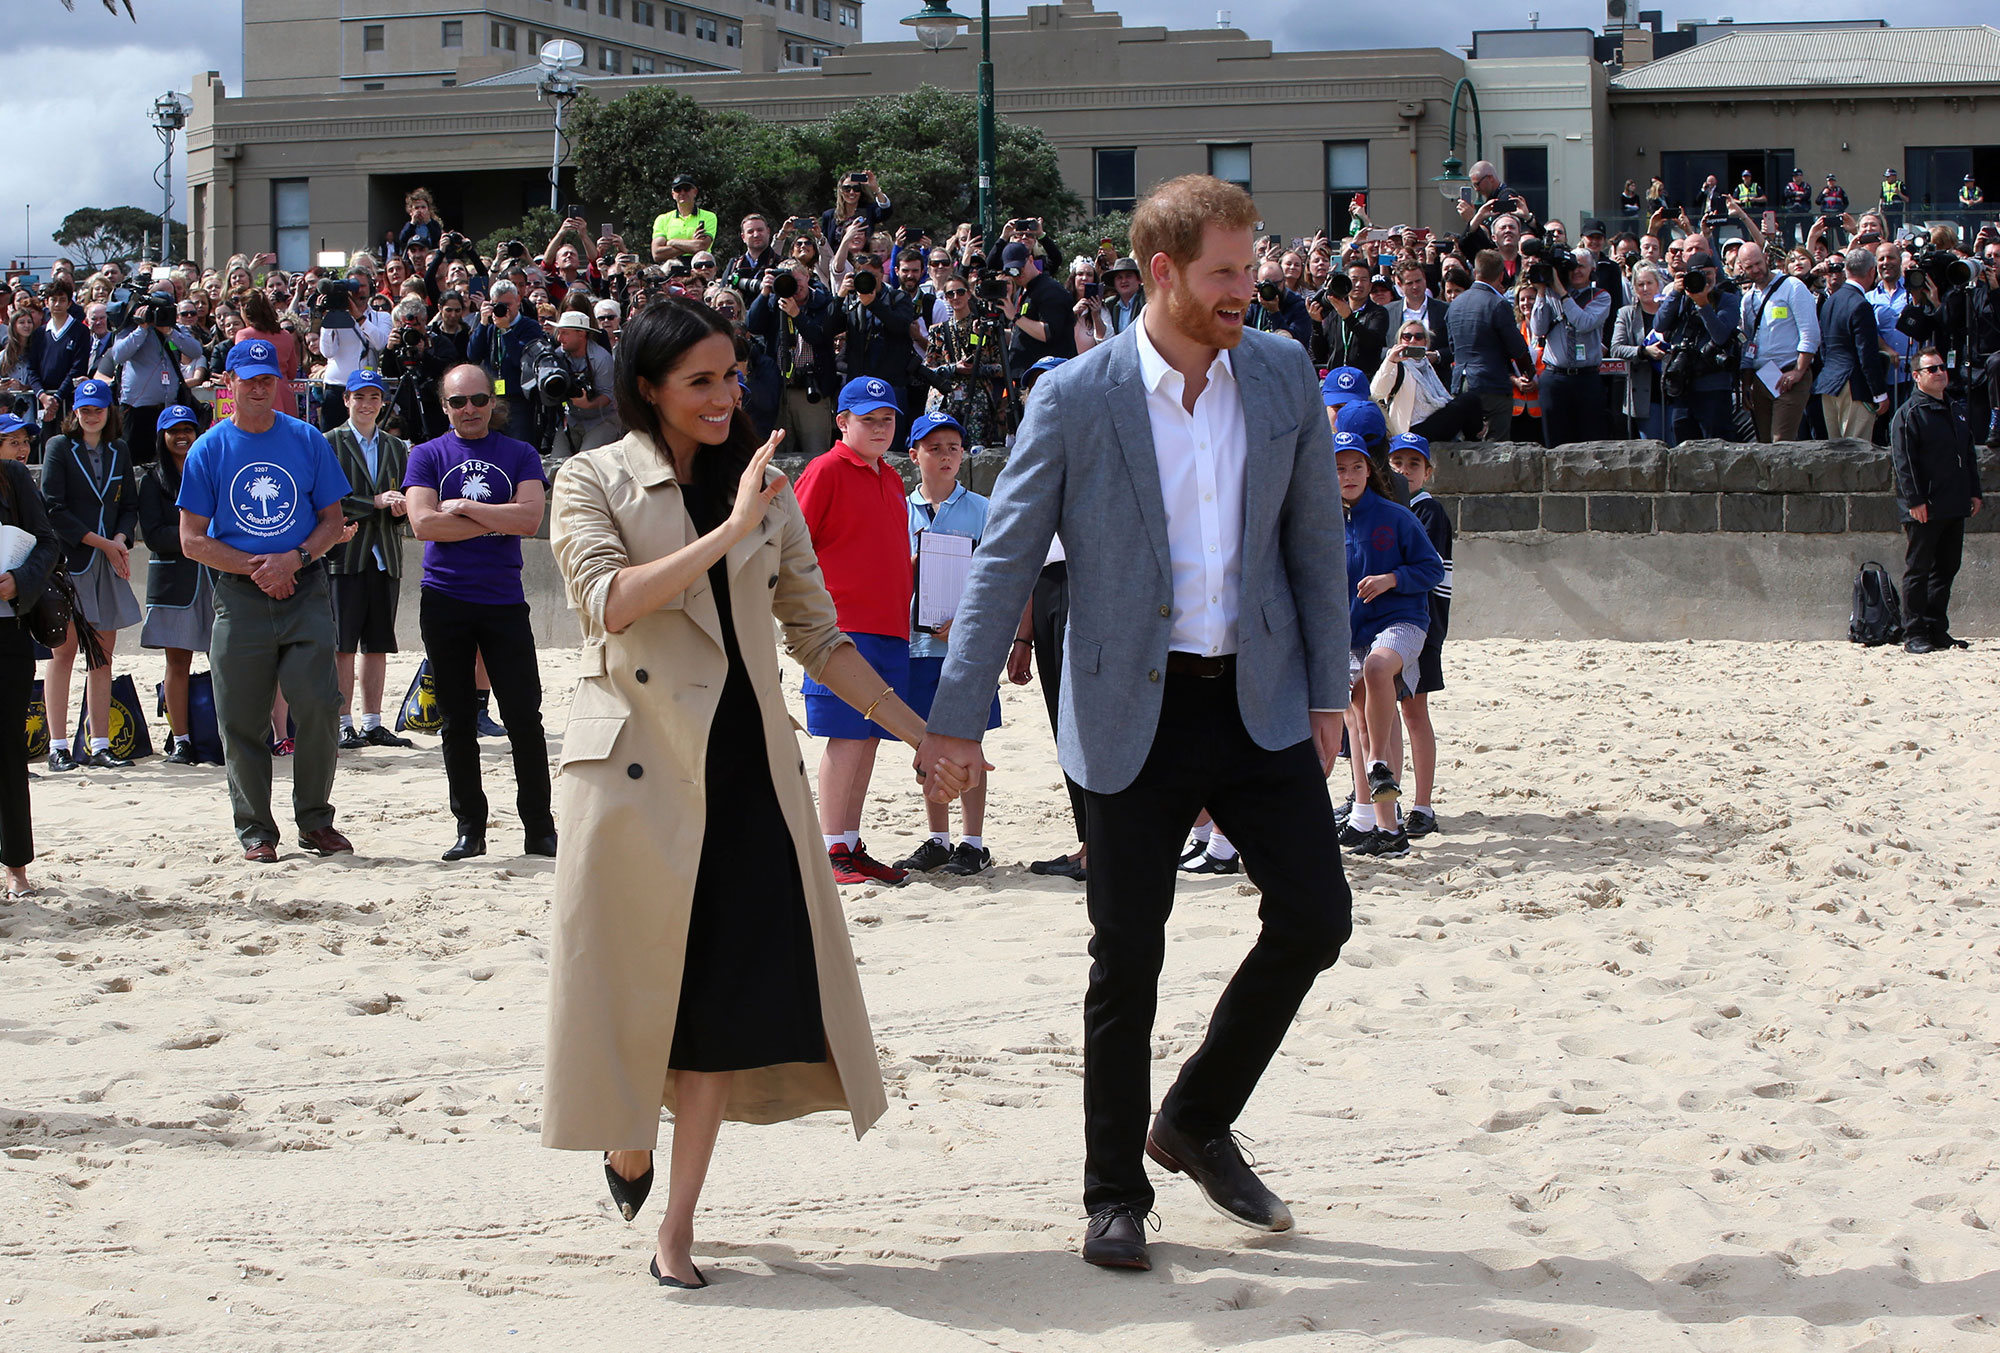 "<div class=""meta image-caption""><div class=""origin-logo origin-image none""><span>none</span></div><span class=""caption-text"">Prince Harry and Meghan, Duchess of Sussex walk across the sand at South Melbourne Beach in Melbourne, Australia, Thursday, Oct. 18. (Ian Vogler/Pool Photo via AP)</span></div>"